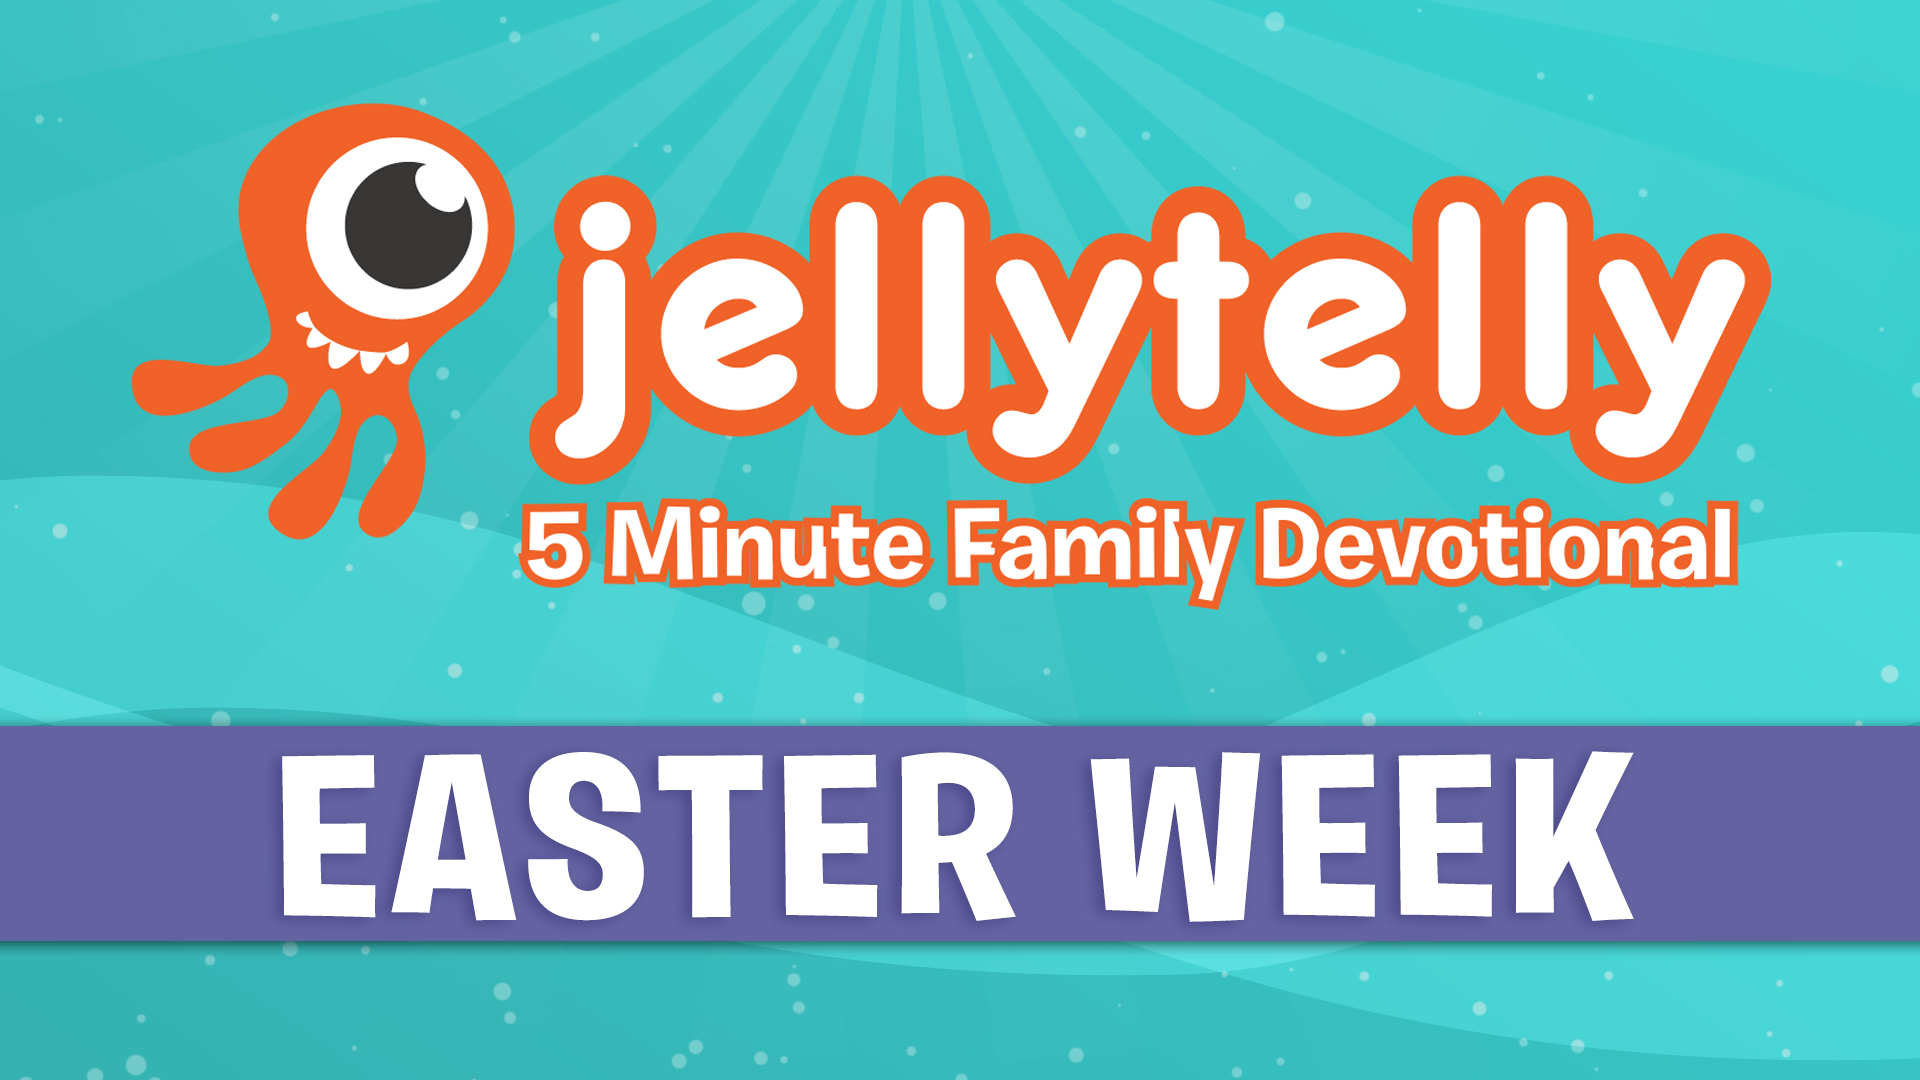 Easter week 5 minute family devotional